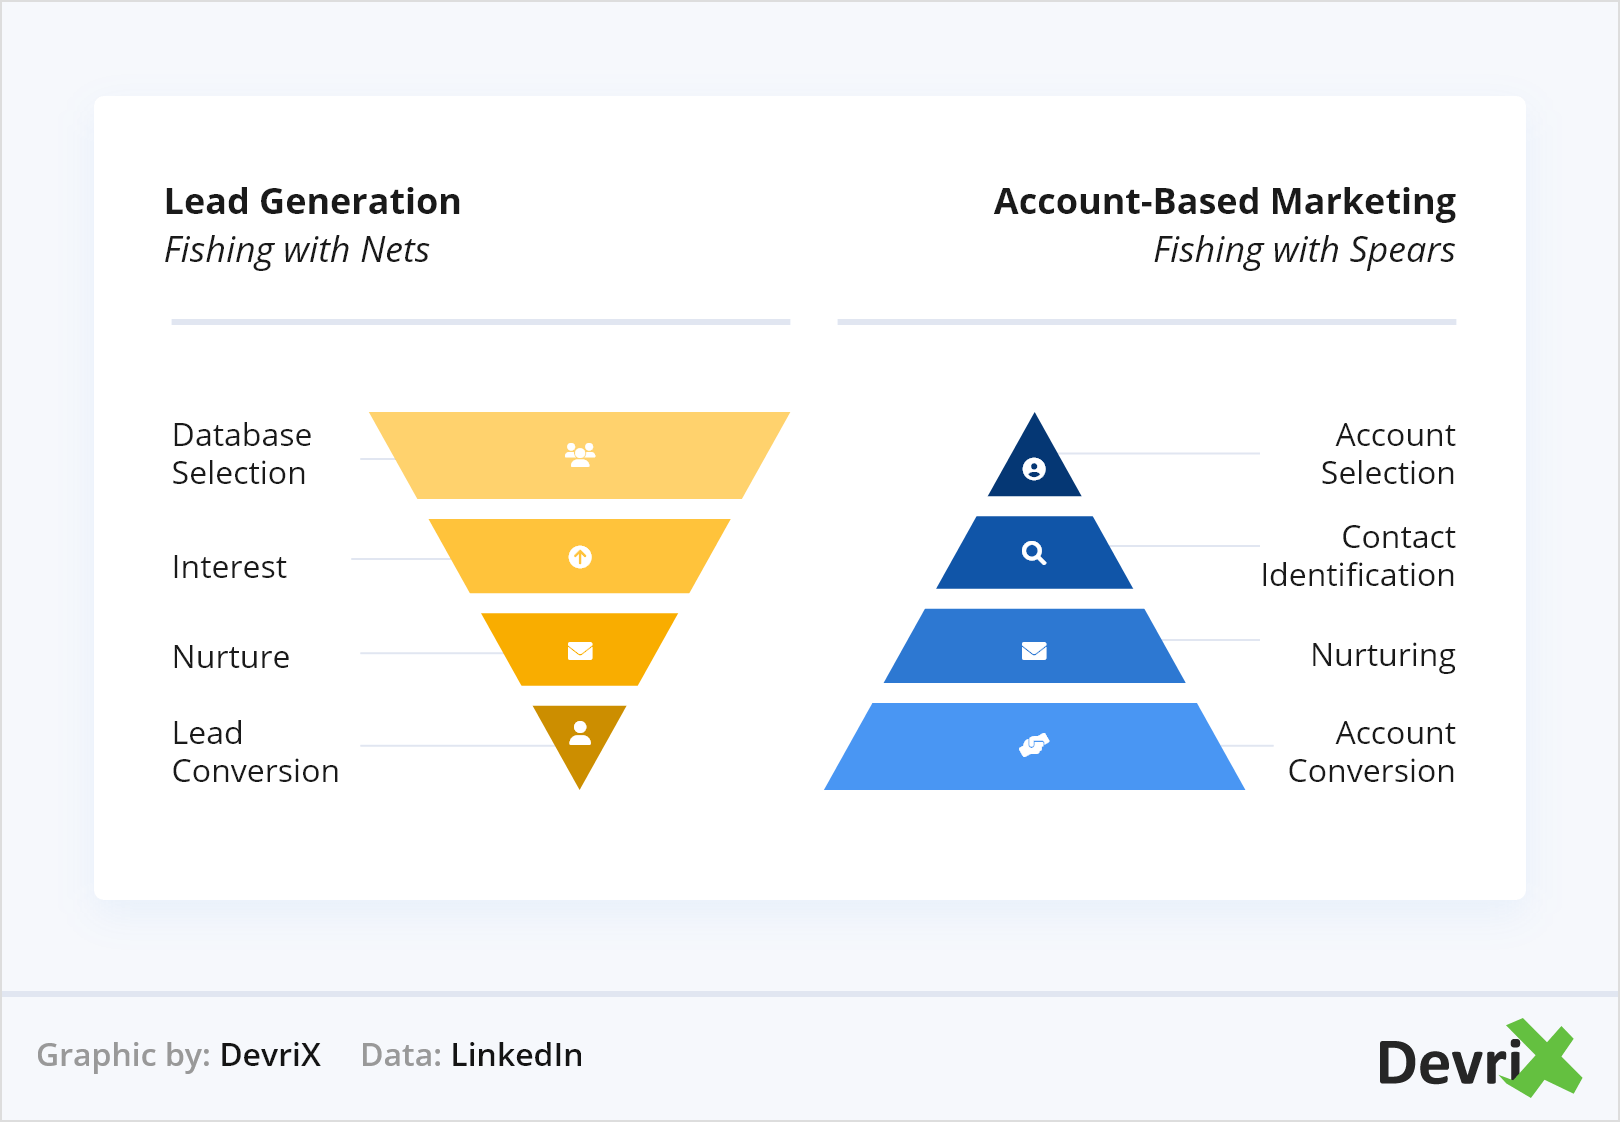 Account Based Marketing and Lead Generation